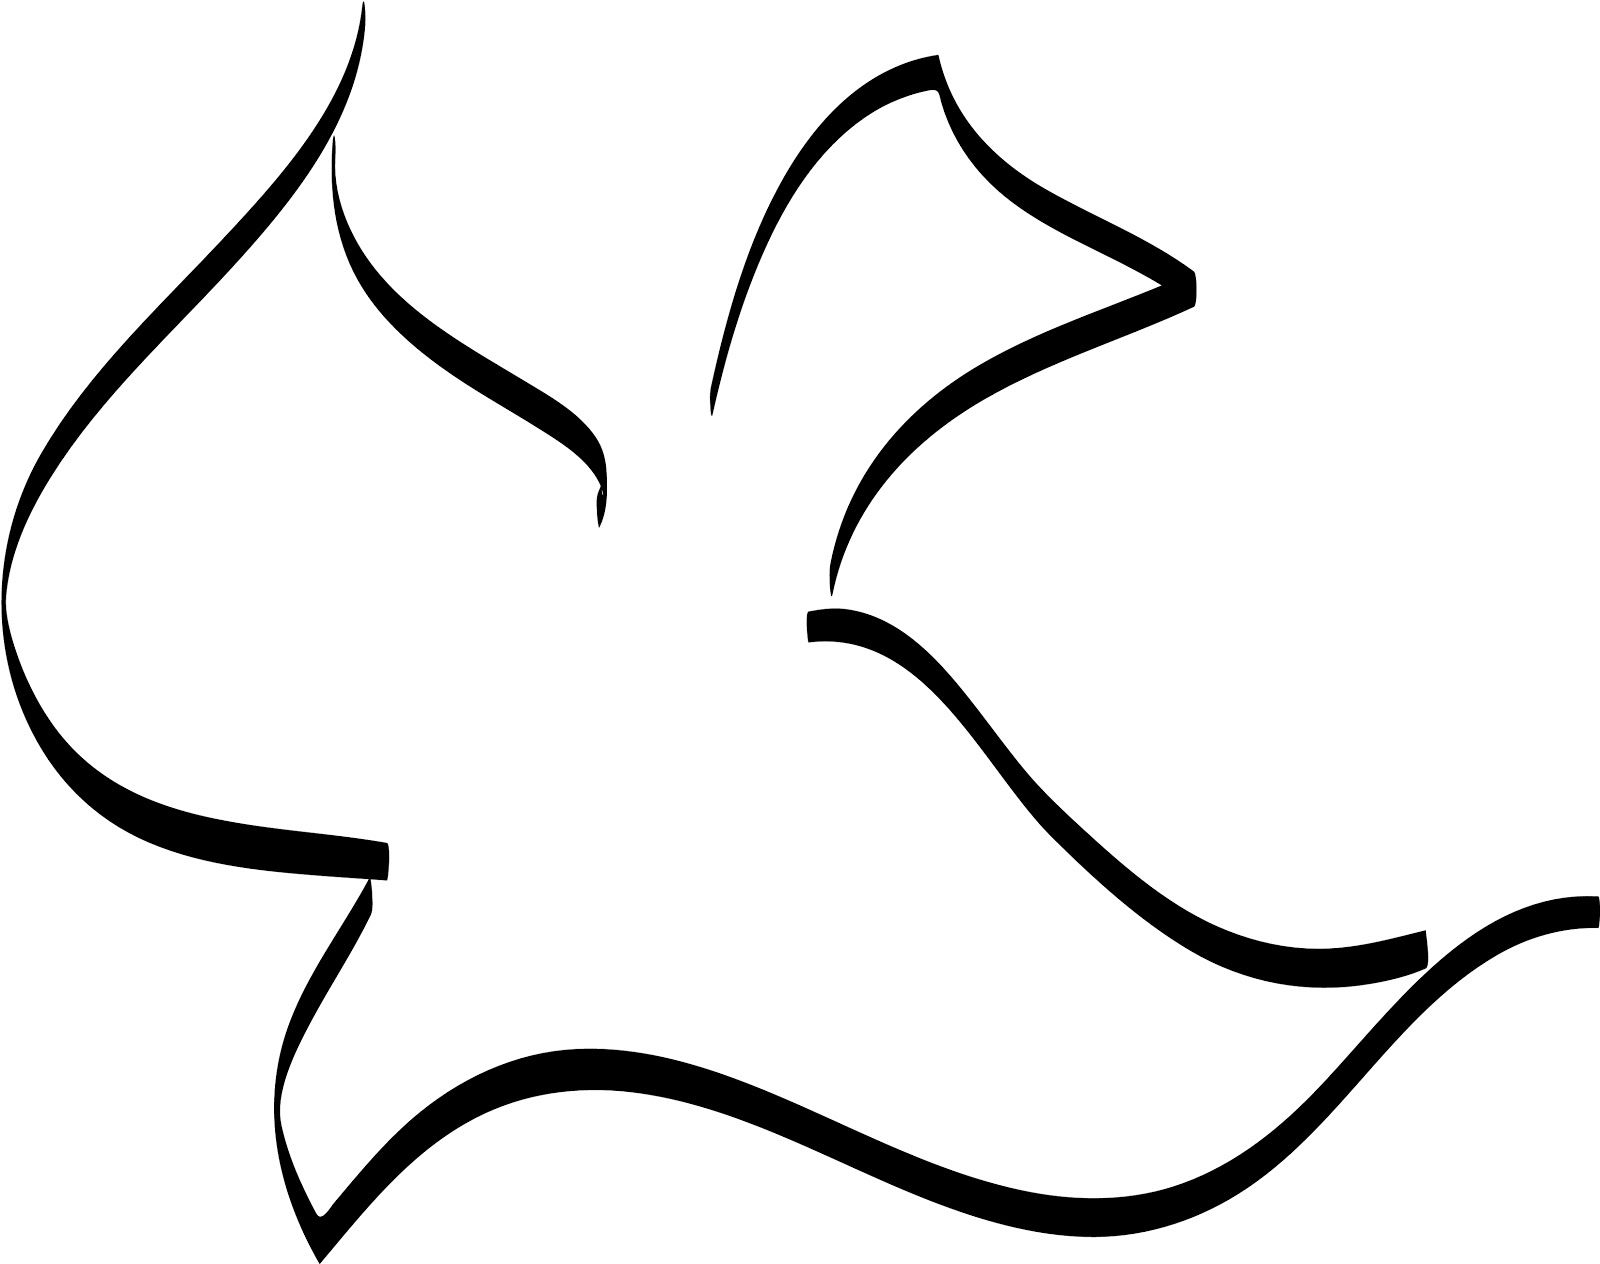 This is best Dove Outline 7645 Dove Outline for your project or